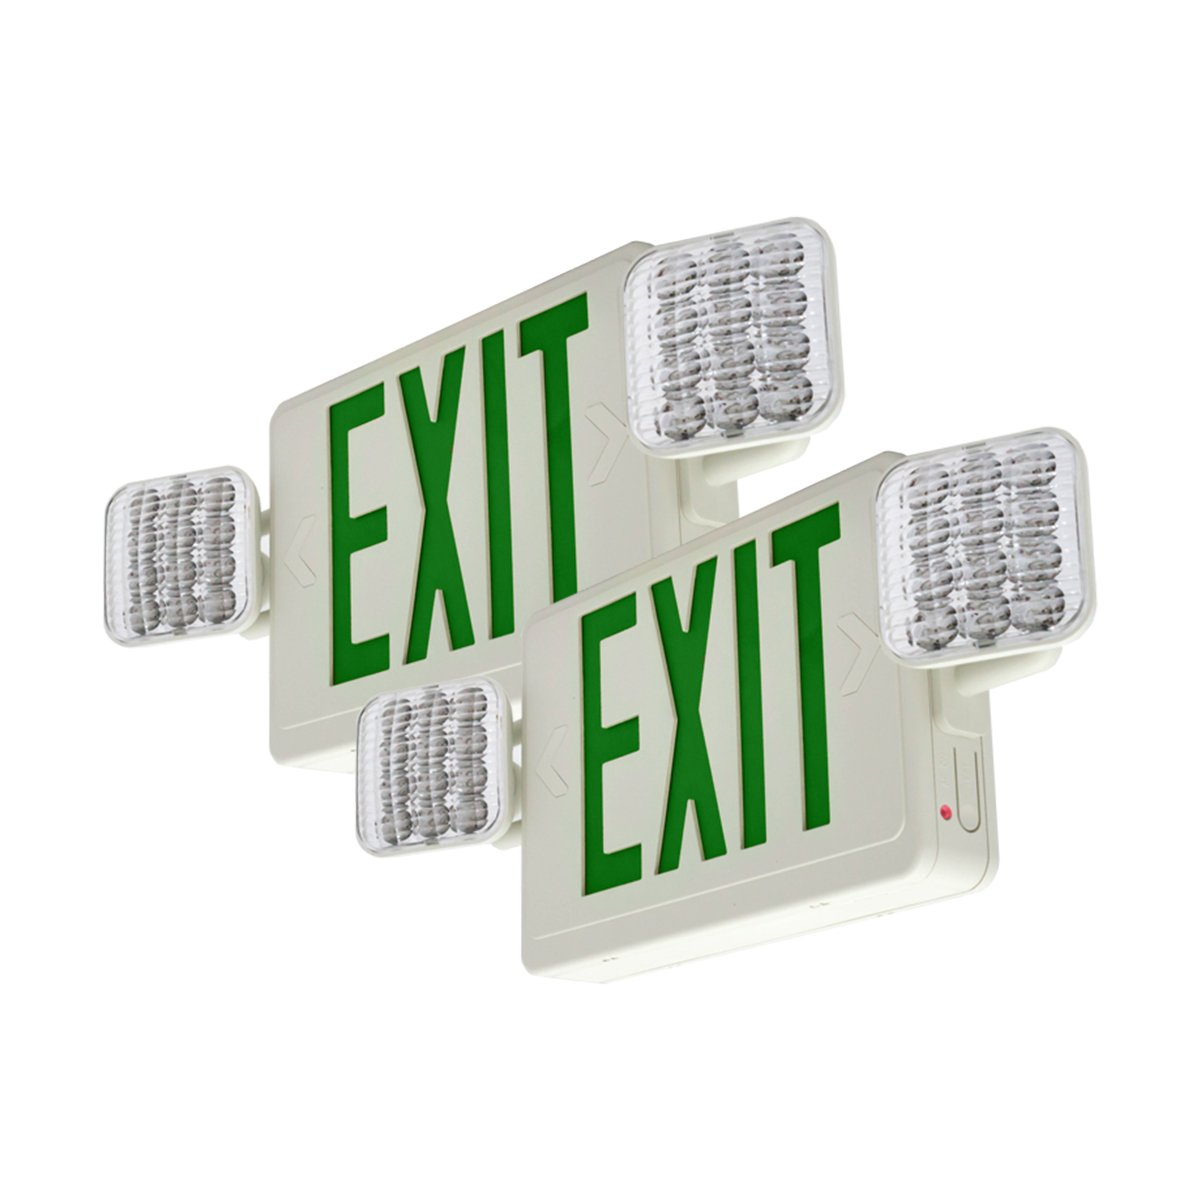 LFI Lights - 2 Pack - UL Certified - Hardwired Red Standard LED Combo Exit Sign Emergency Light - COMBOG2X2